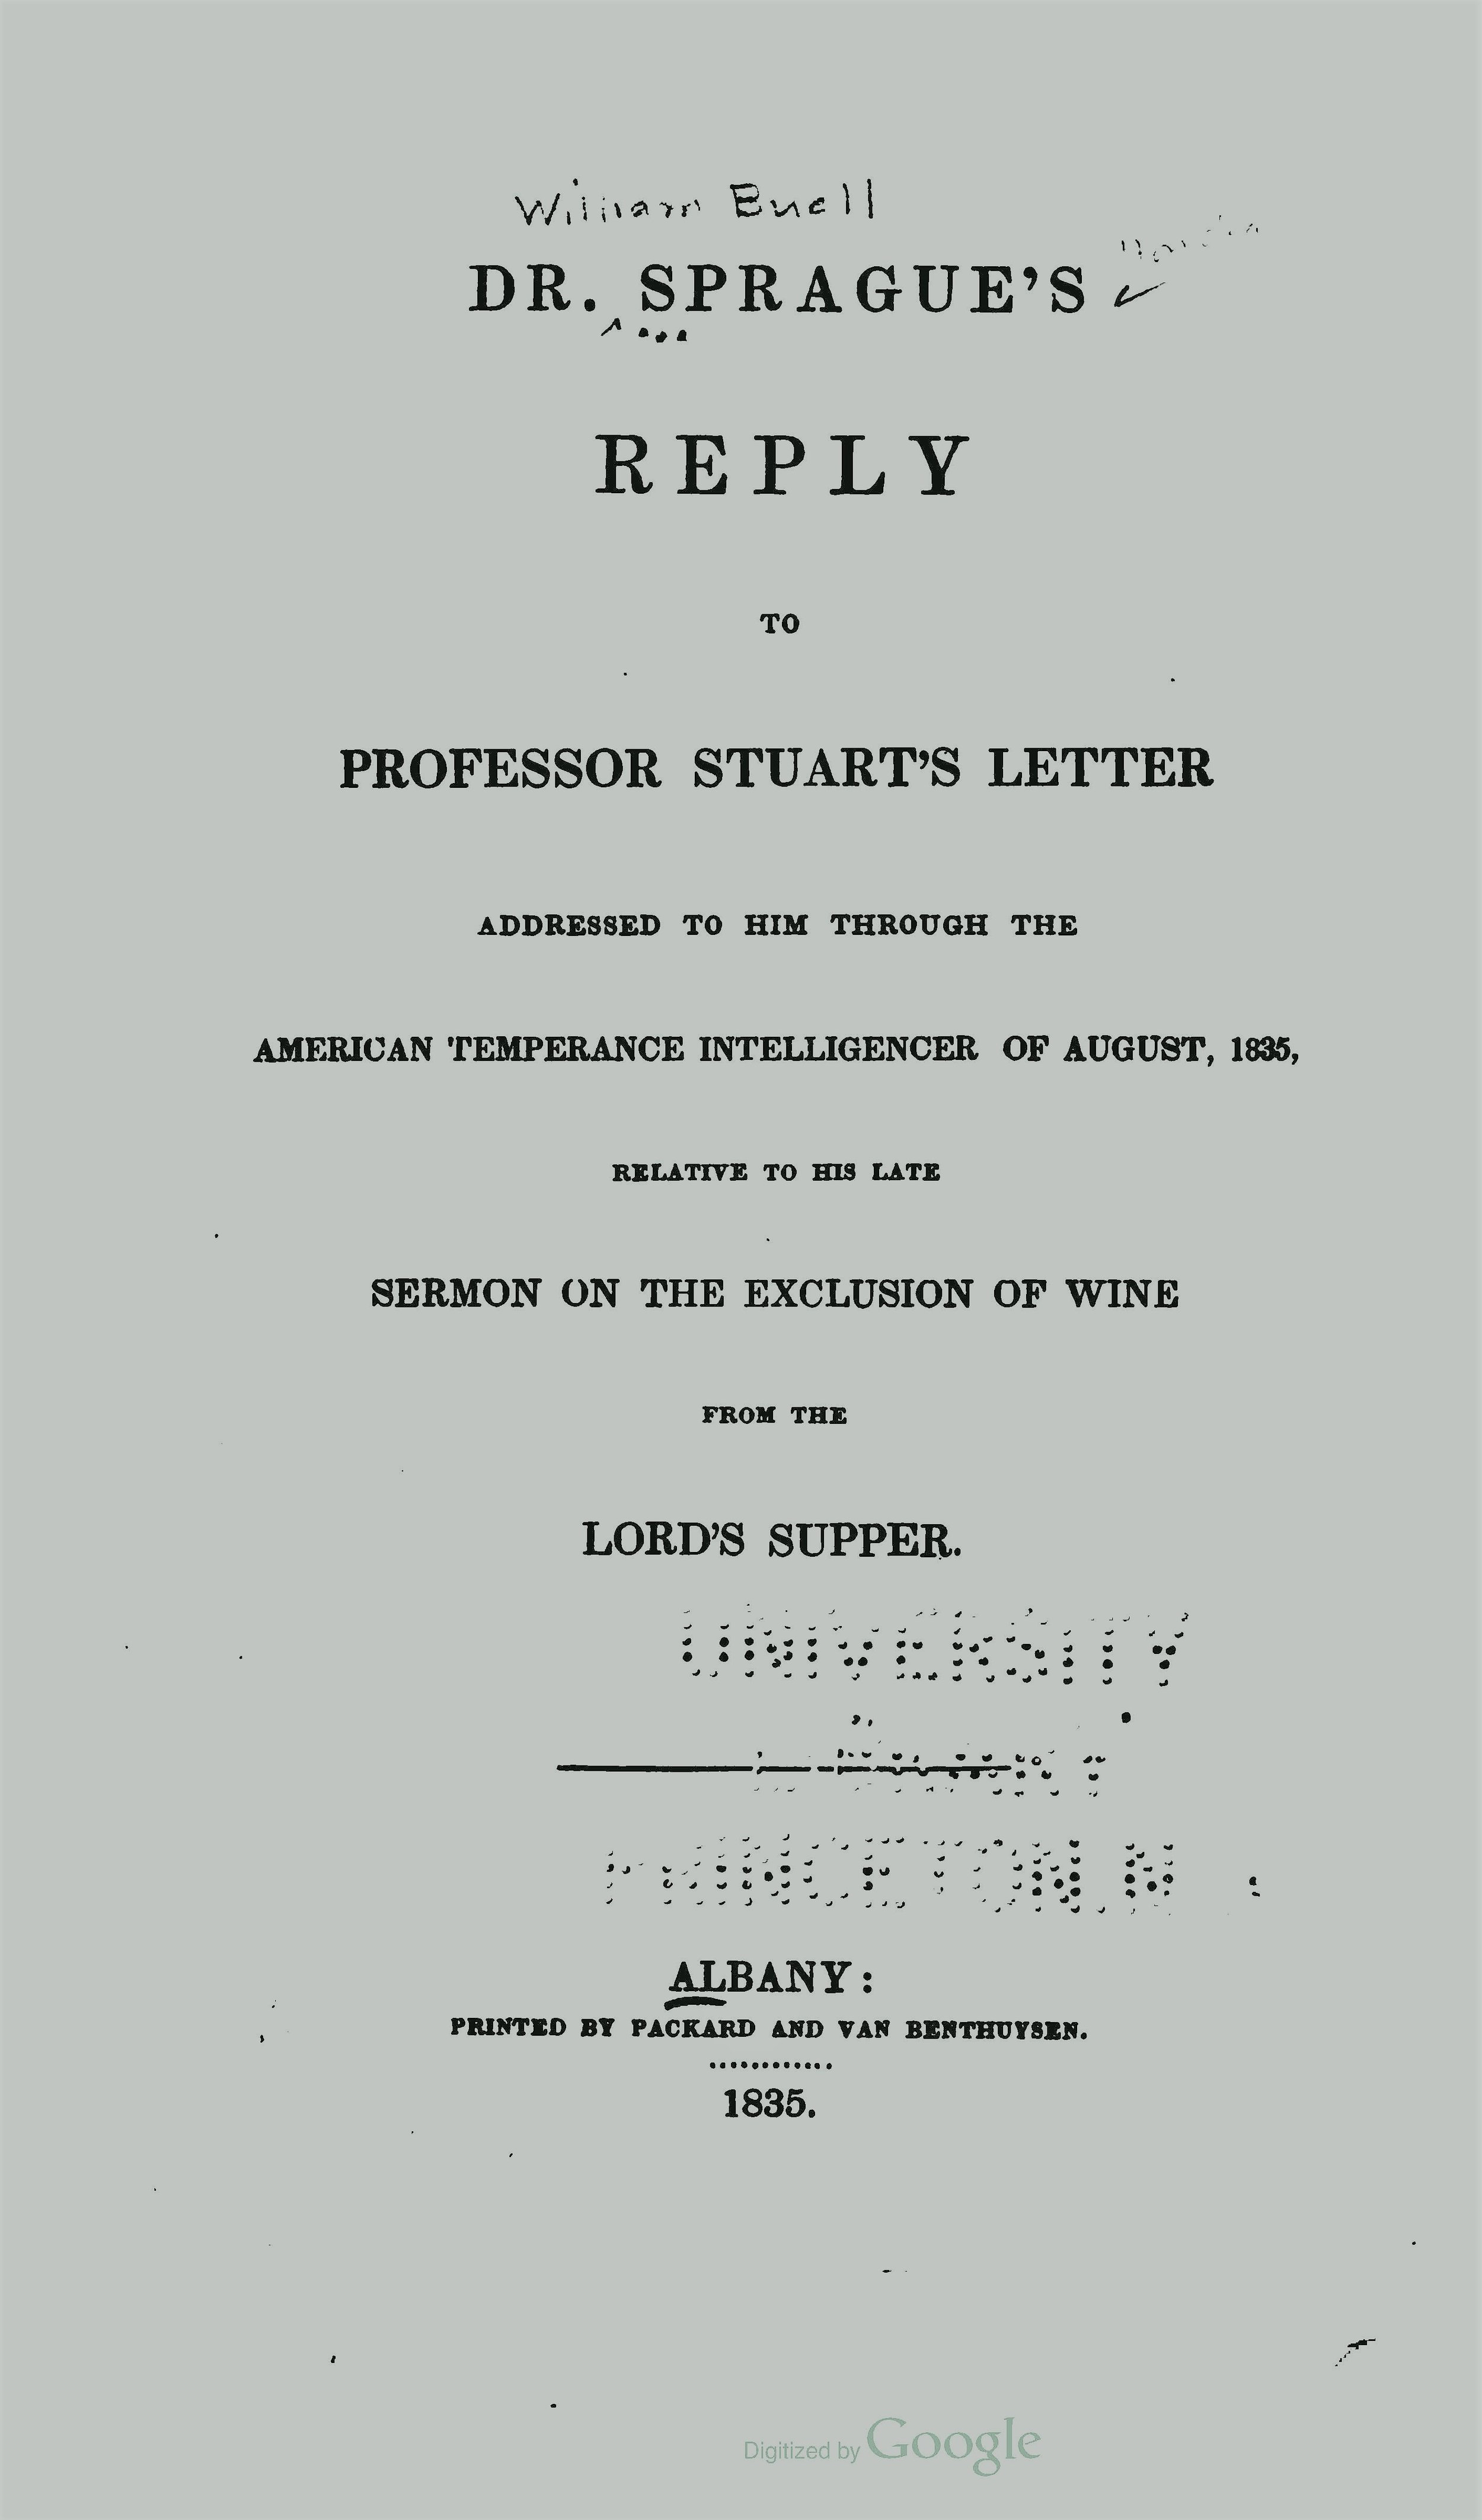 Sprague, William Buell, Dr Spragues Reply to Professor Stuarts Letter Title Page.jpg